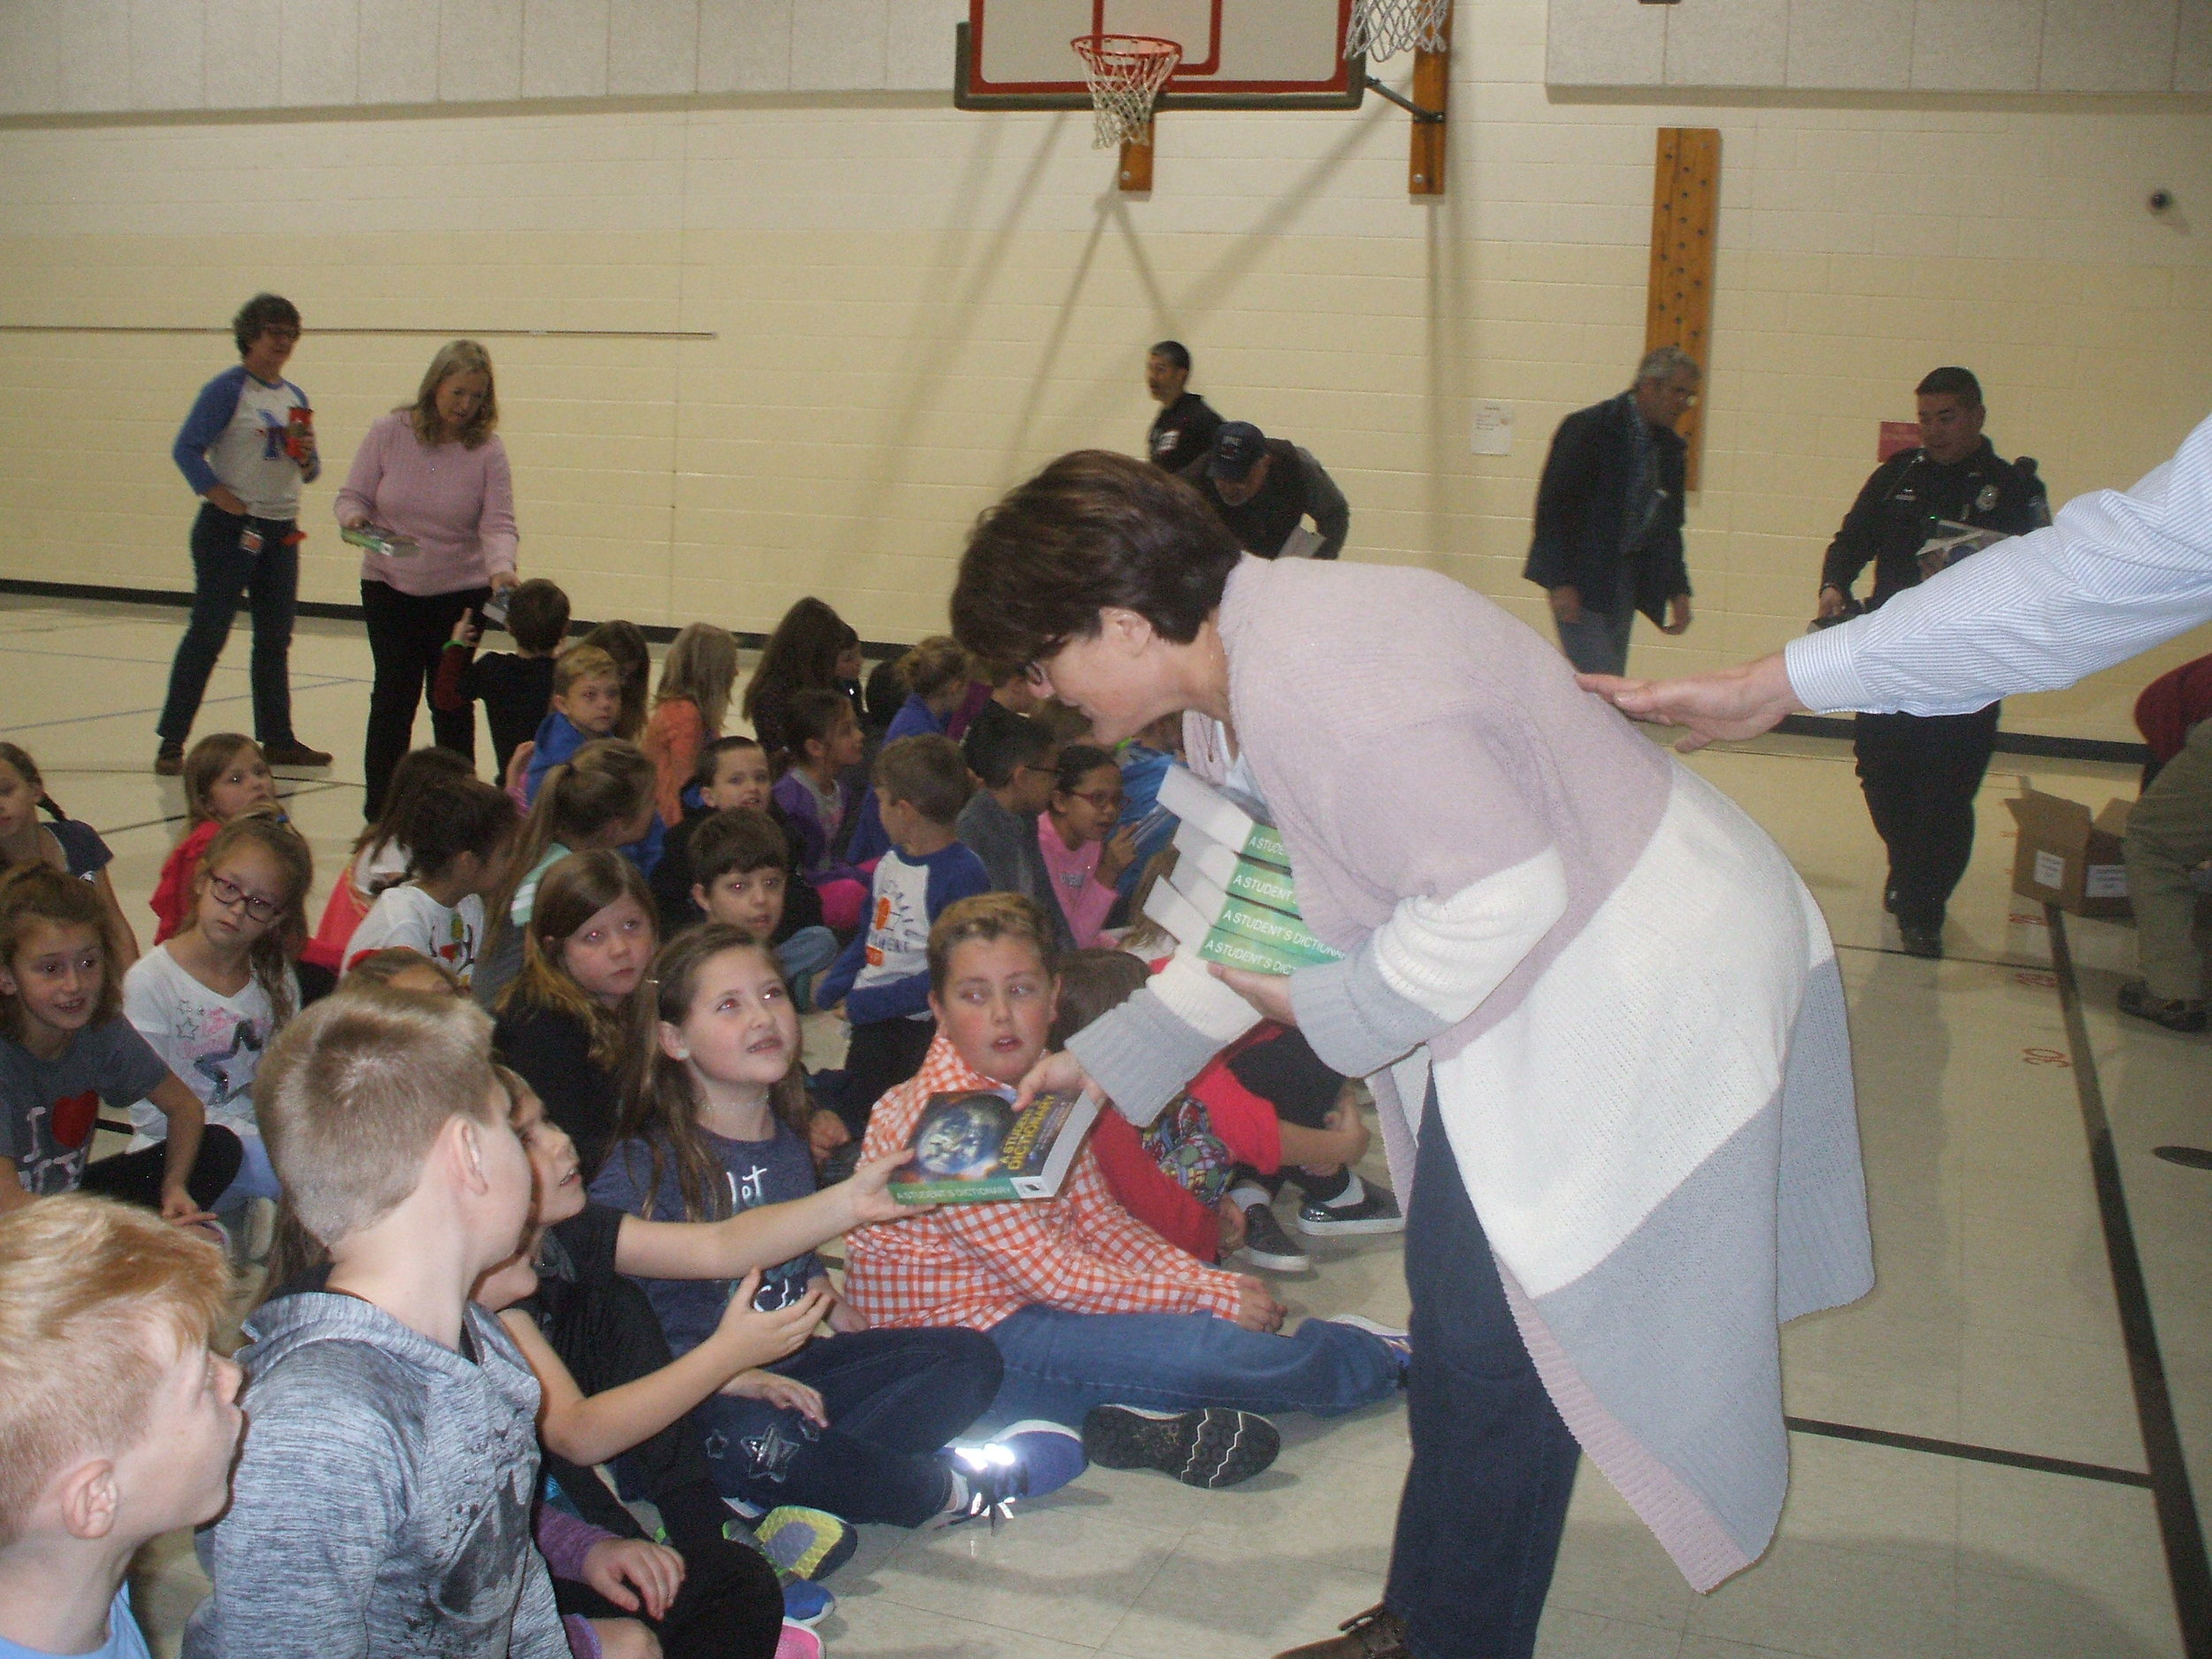 Member Betsy Spain is shown presenting a dictionary to her grandson at Edgewood Elementary School.